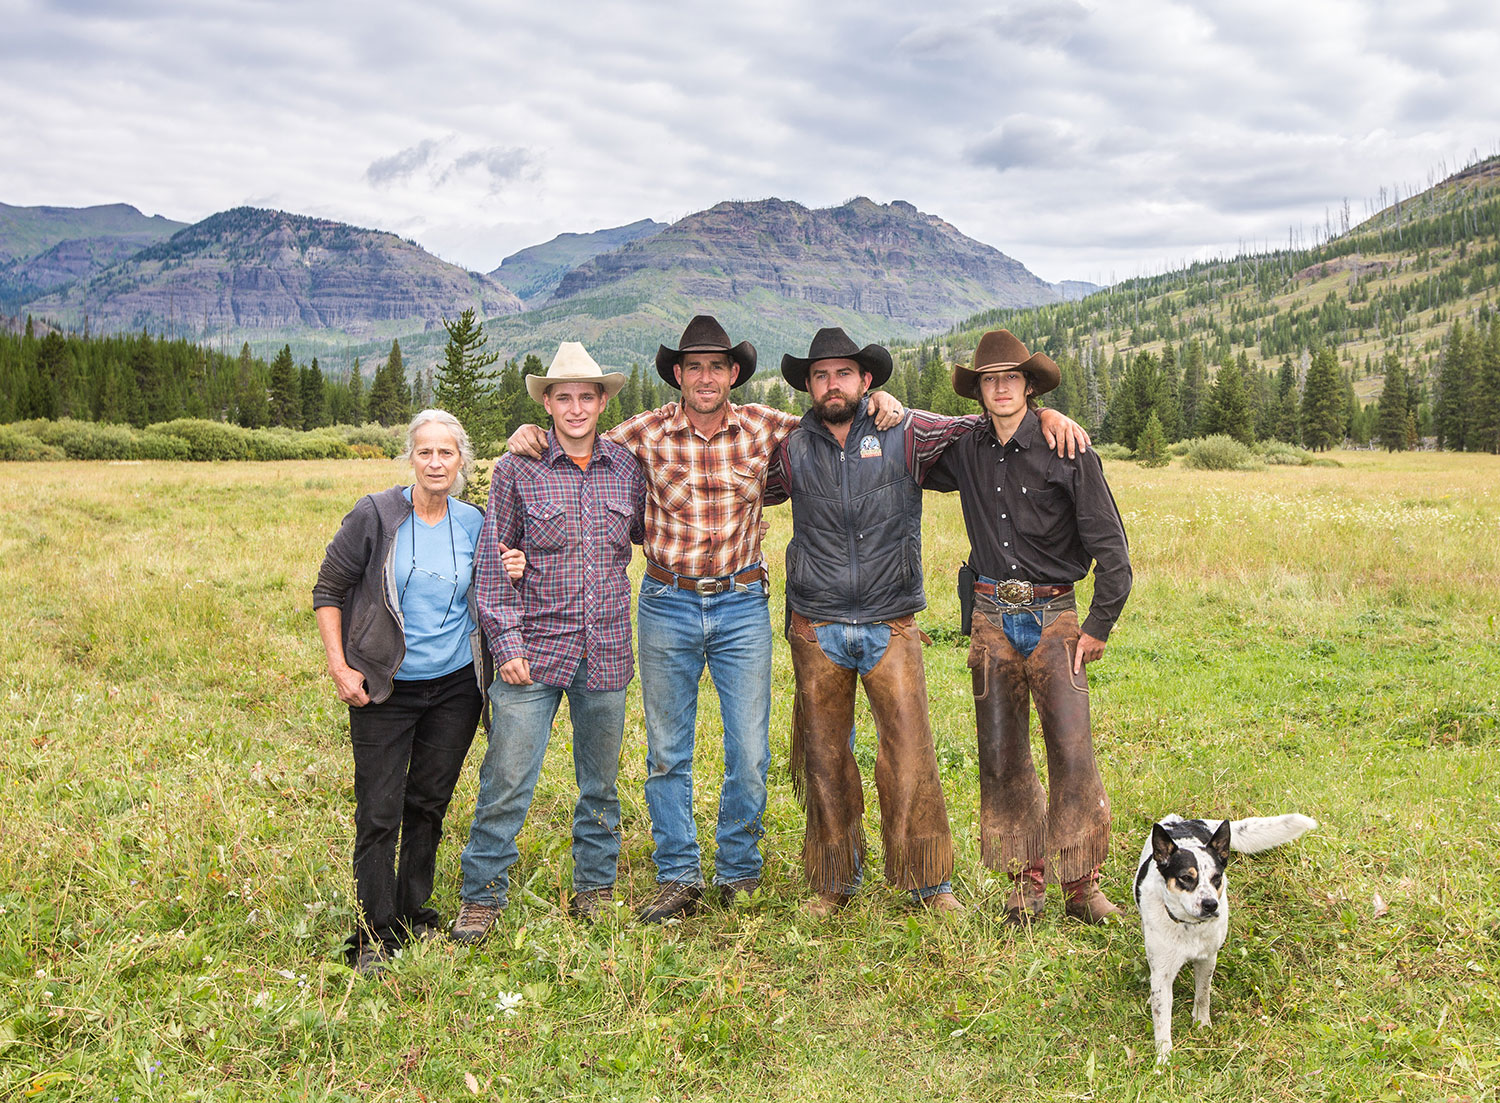 The guides of Absaroka Beartooth Outfitters